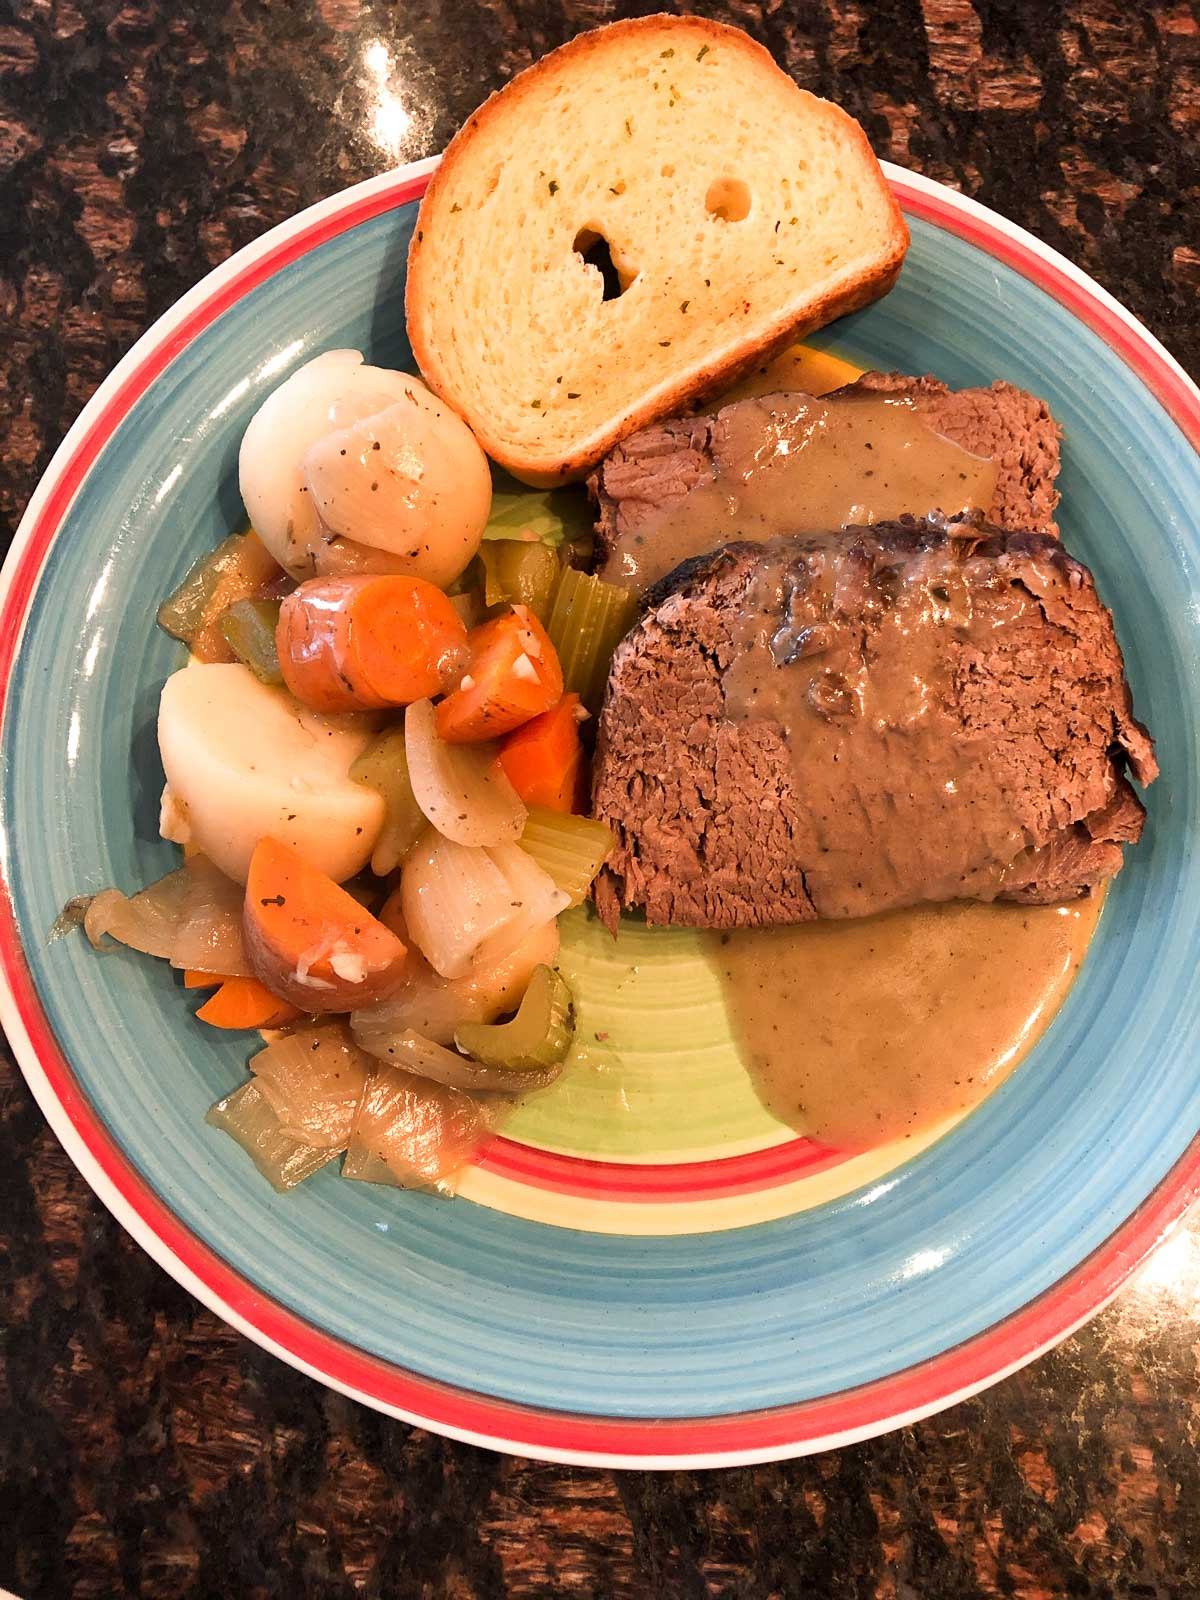 slow cooked pot roast with root vegetables and garlic bread